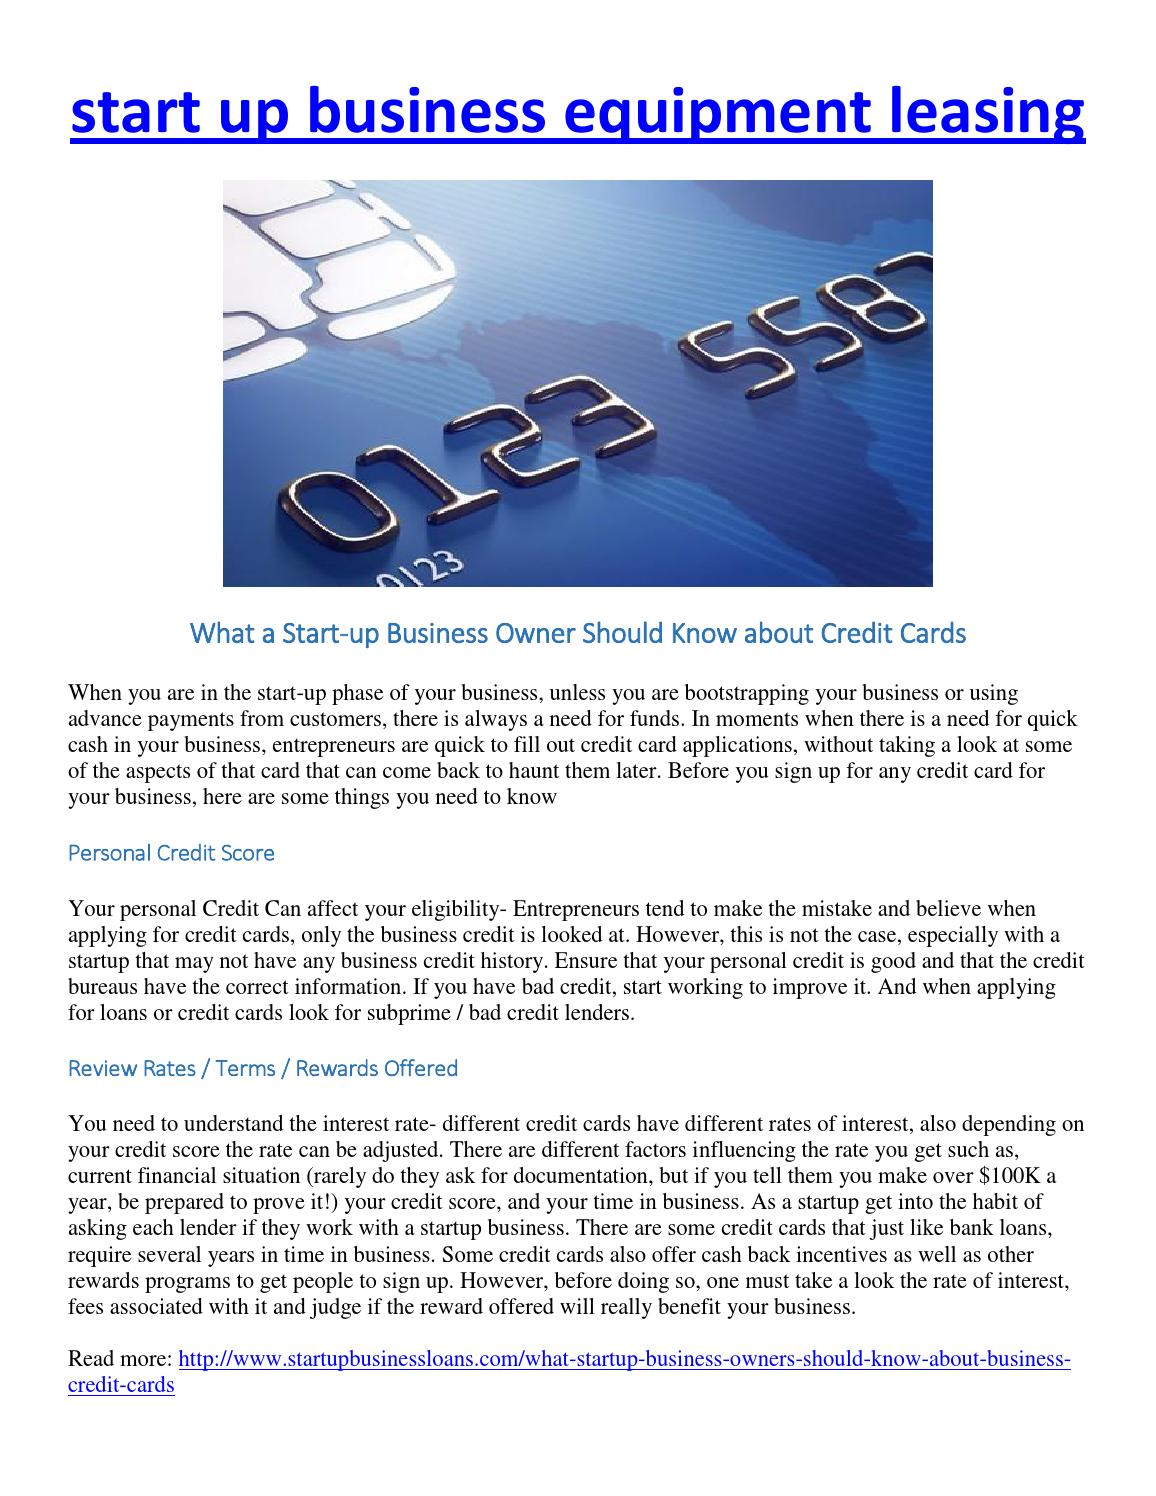 What a start up business owner should know about business credit what a start up business owner should know about business credit cards by mary s anderson issuu reheart Image collections